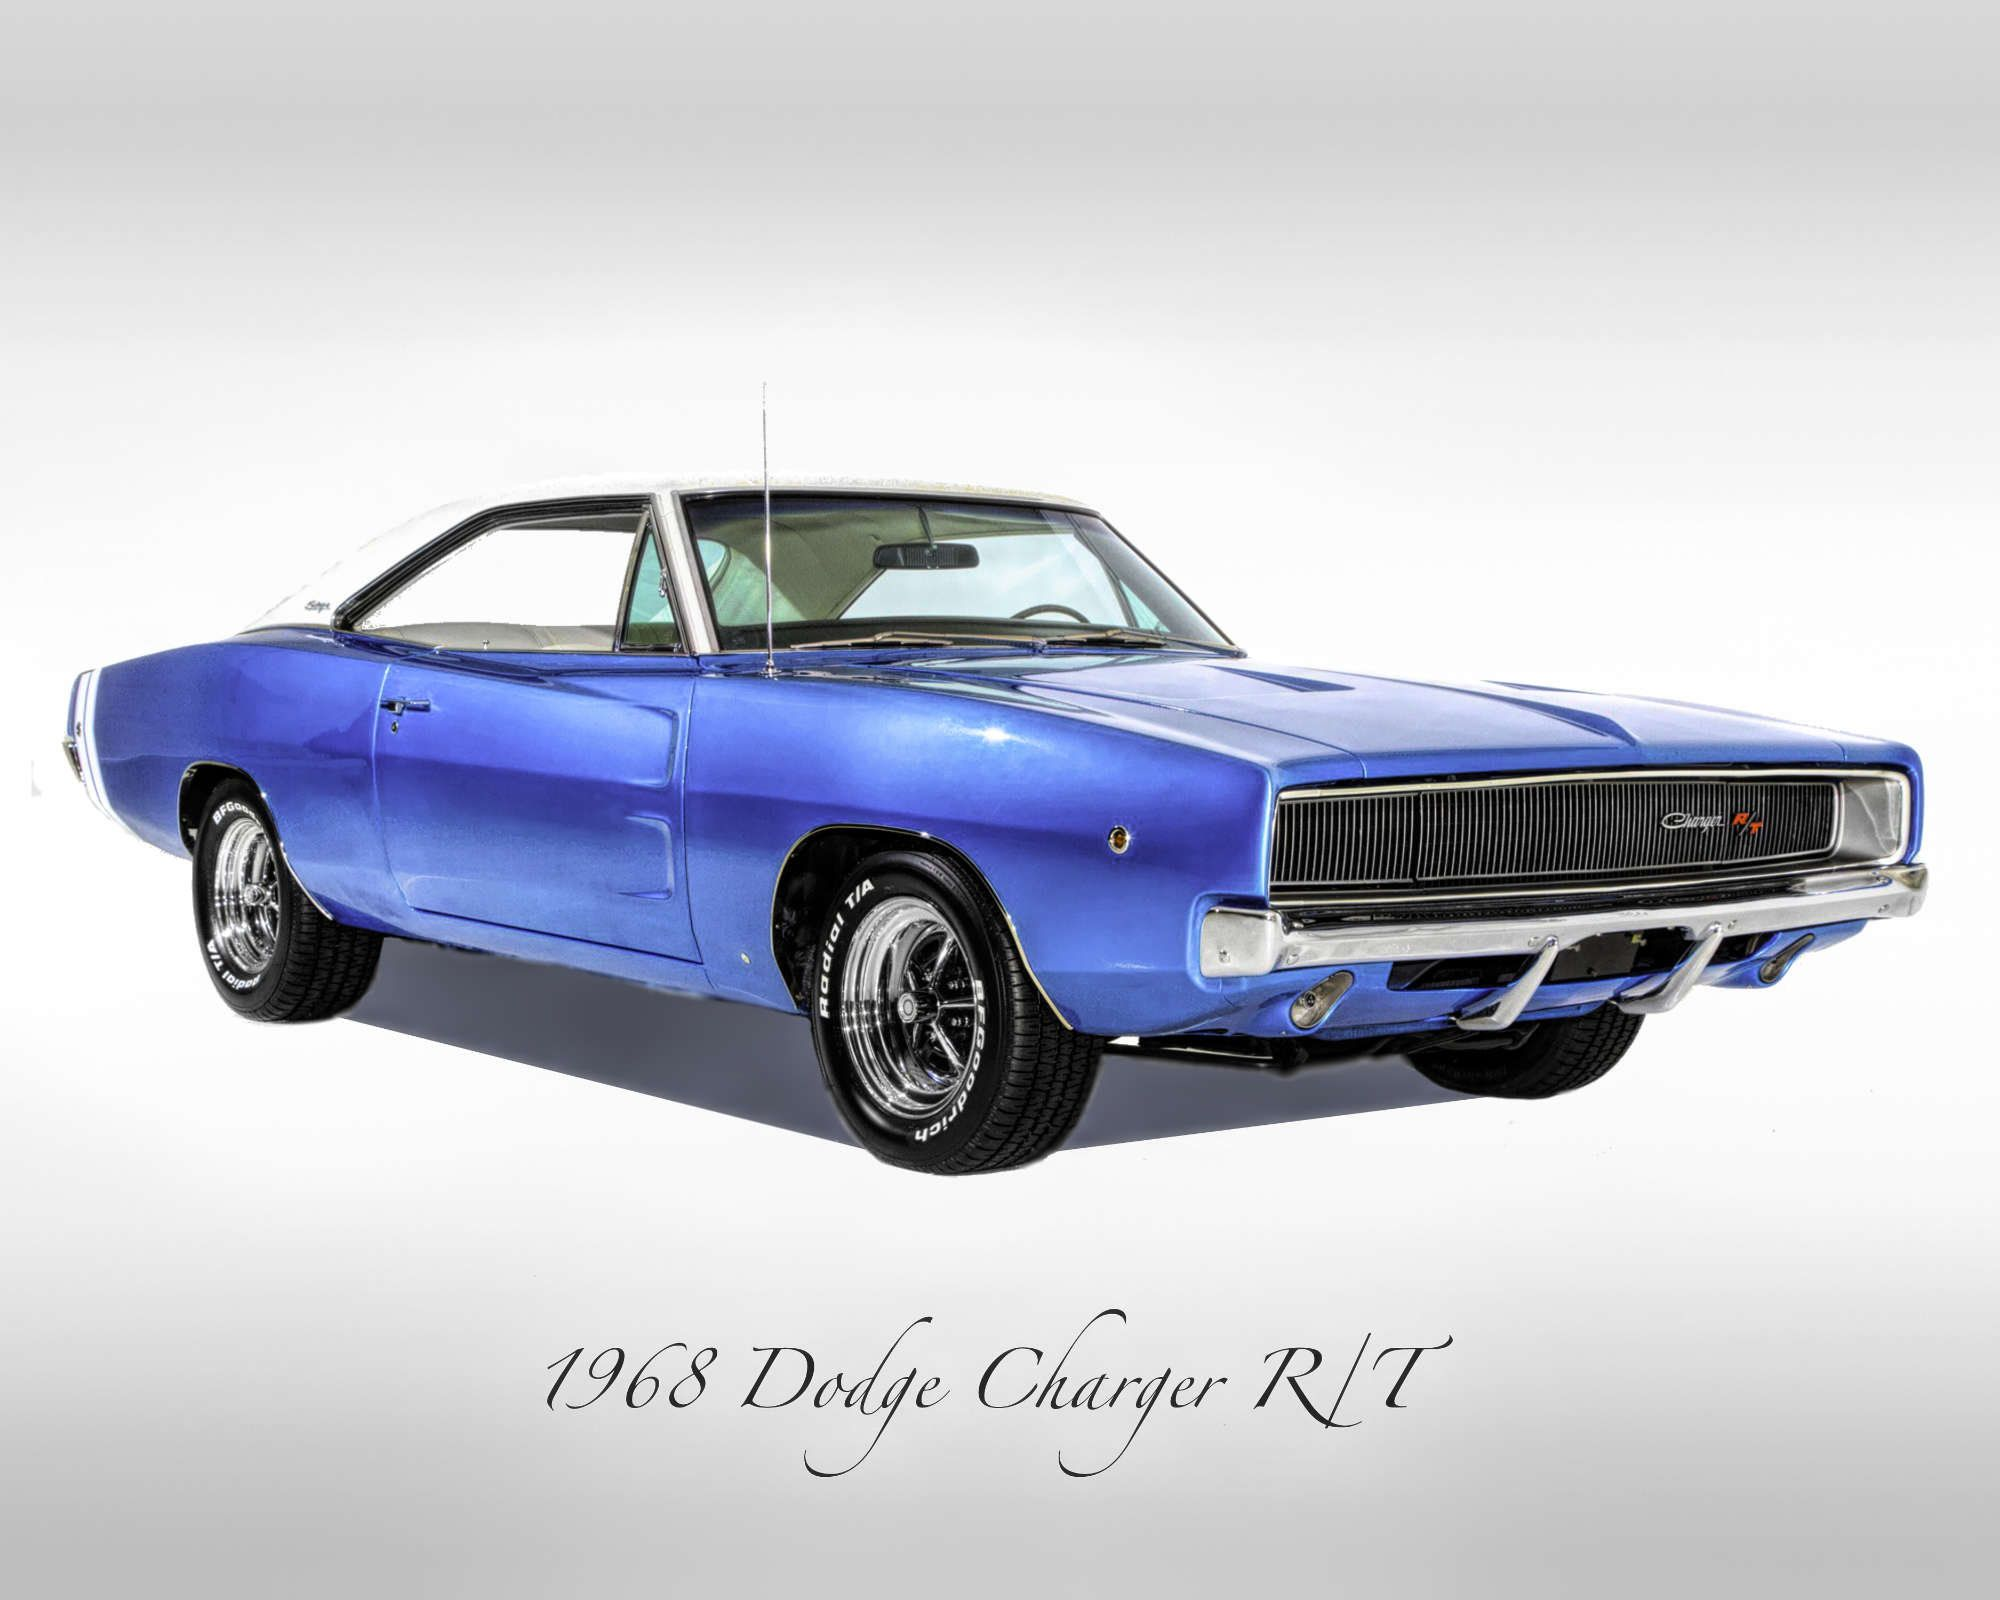 Classic Cars – 1968 Dodge Charger R/T – Muscle Car – Print